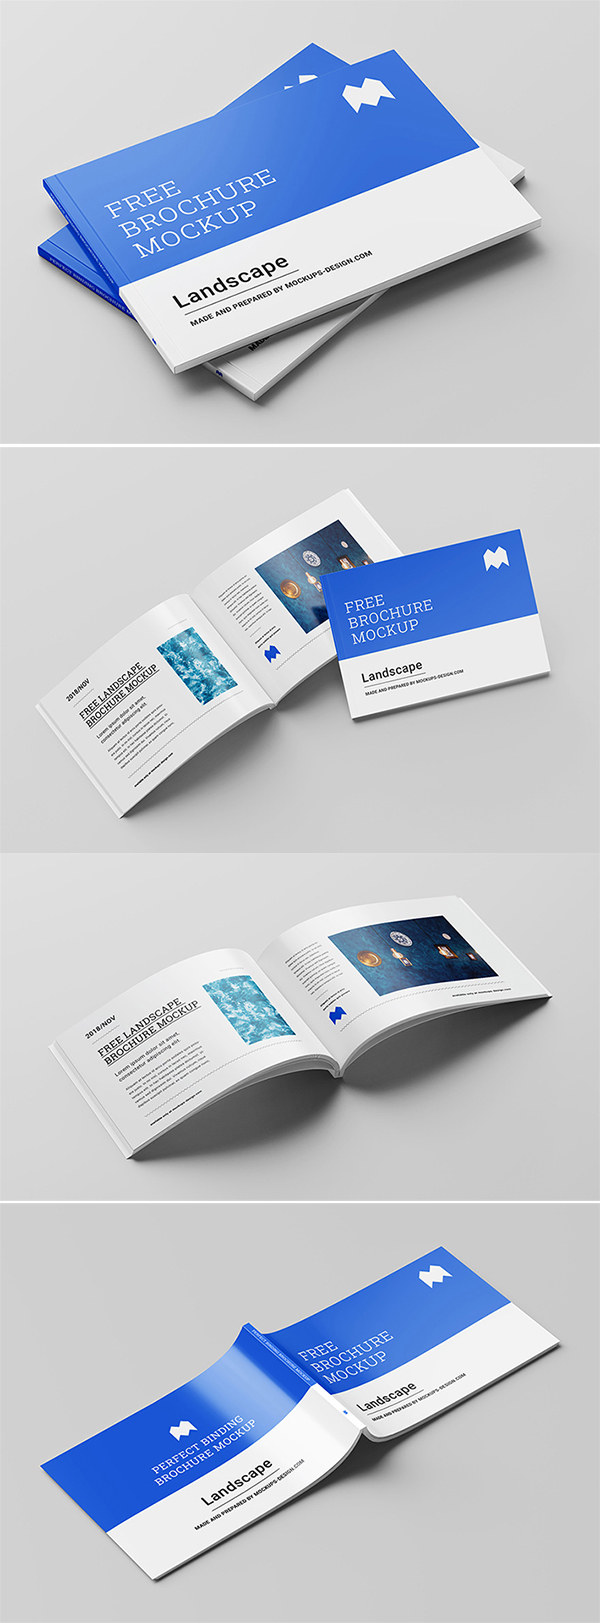 Free Download Perfect Landscape Brochure PSD Mockup